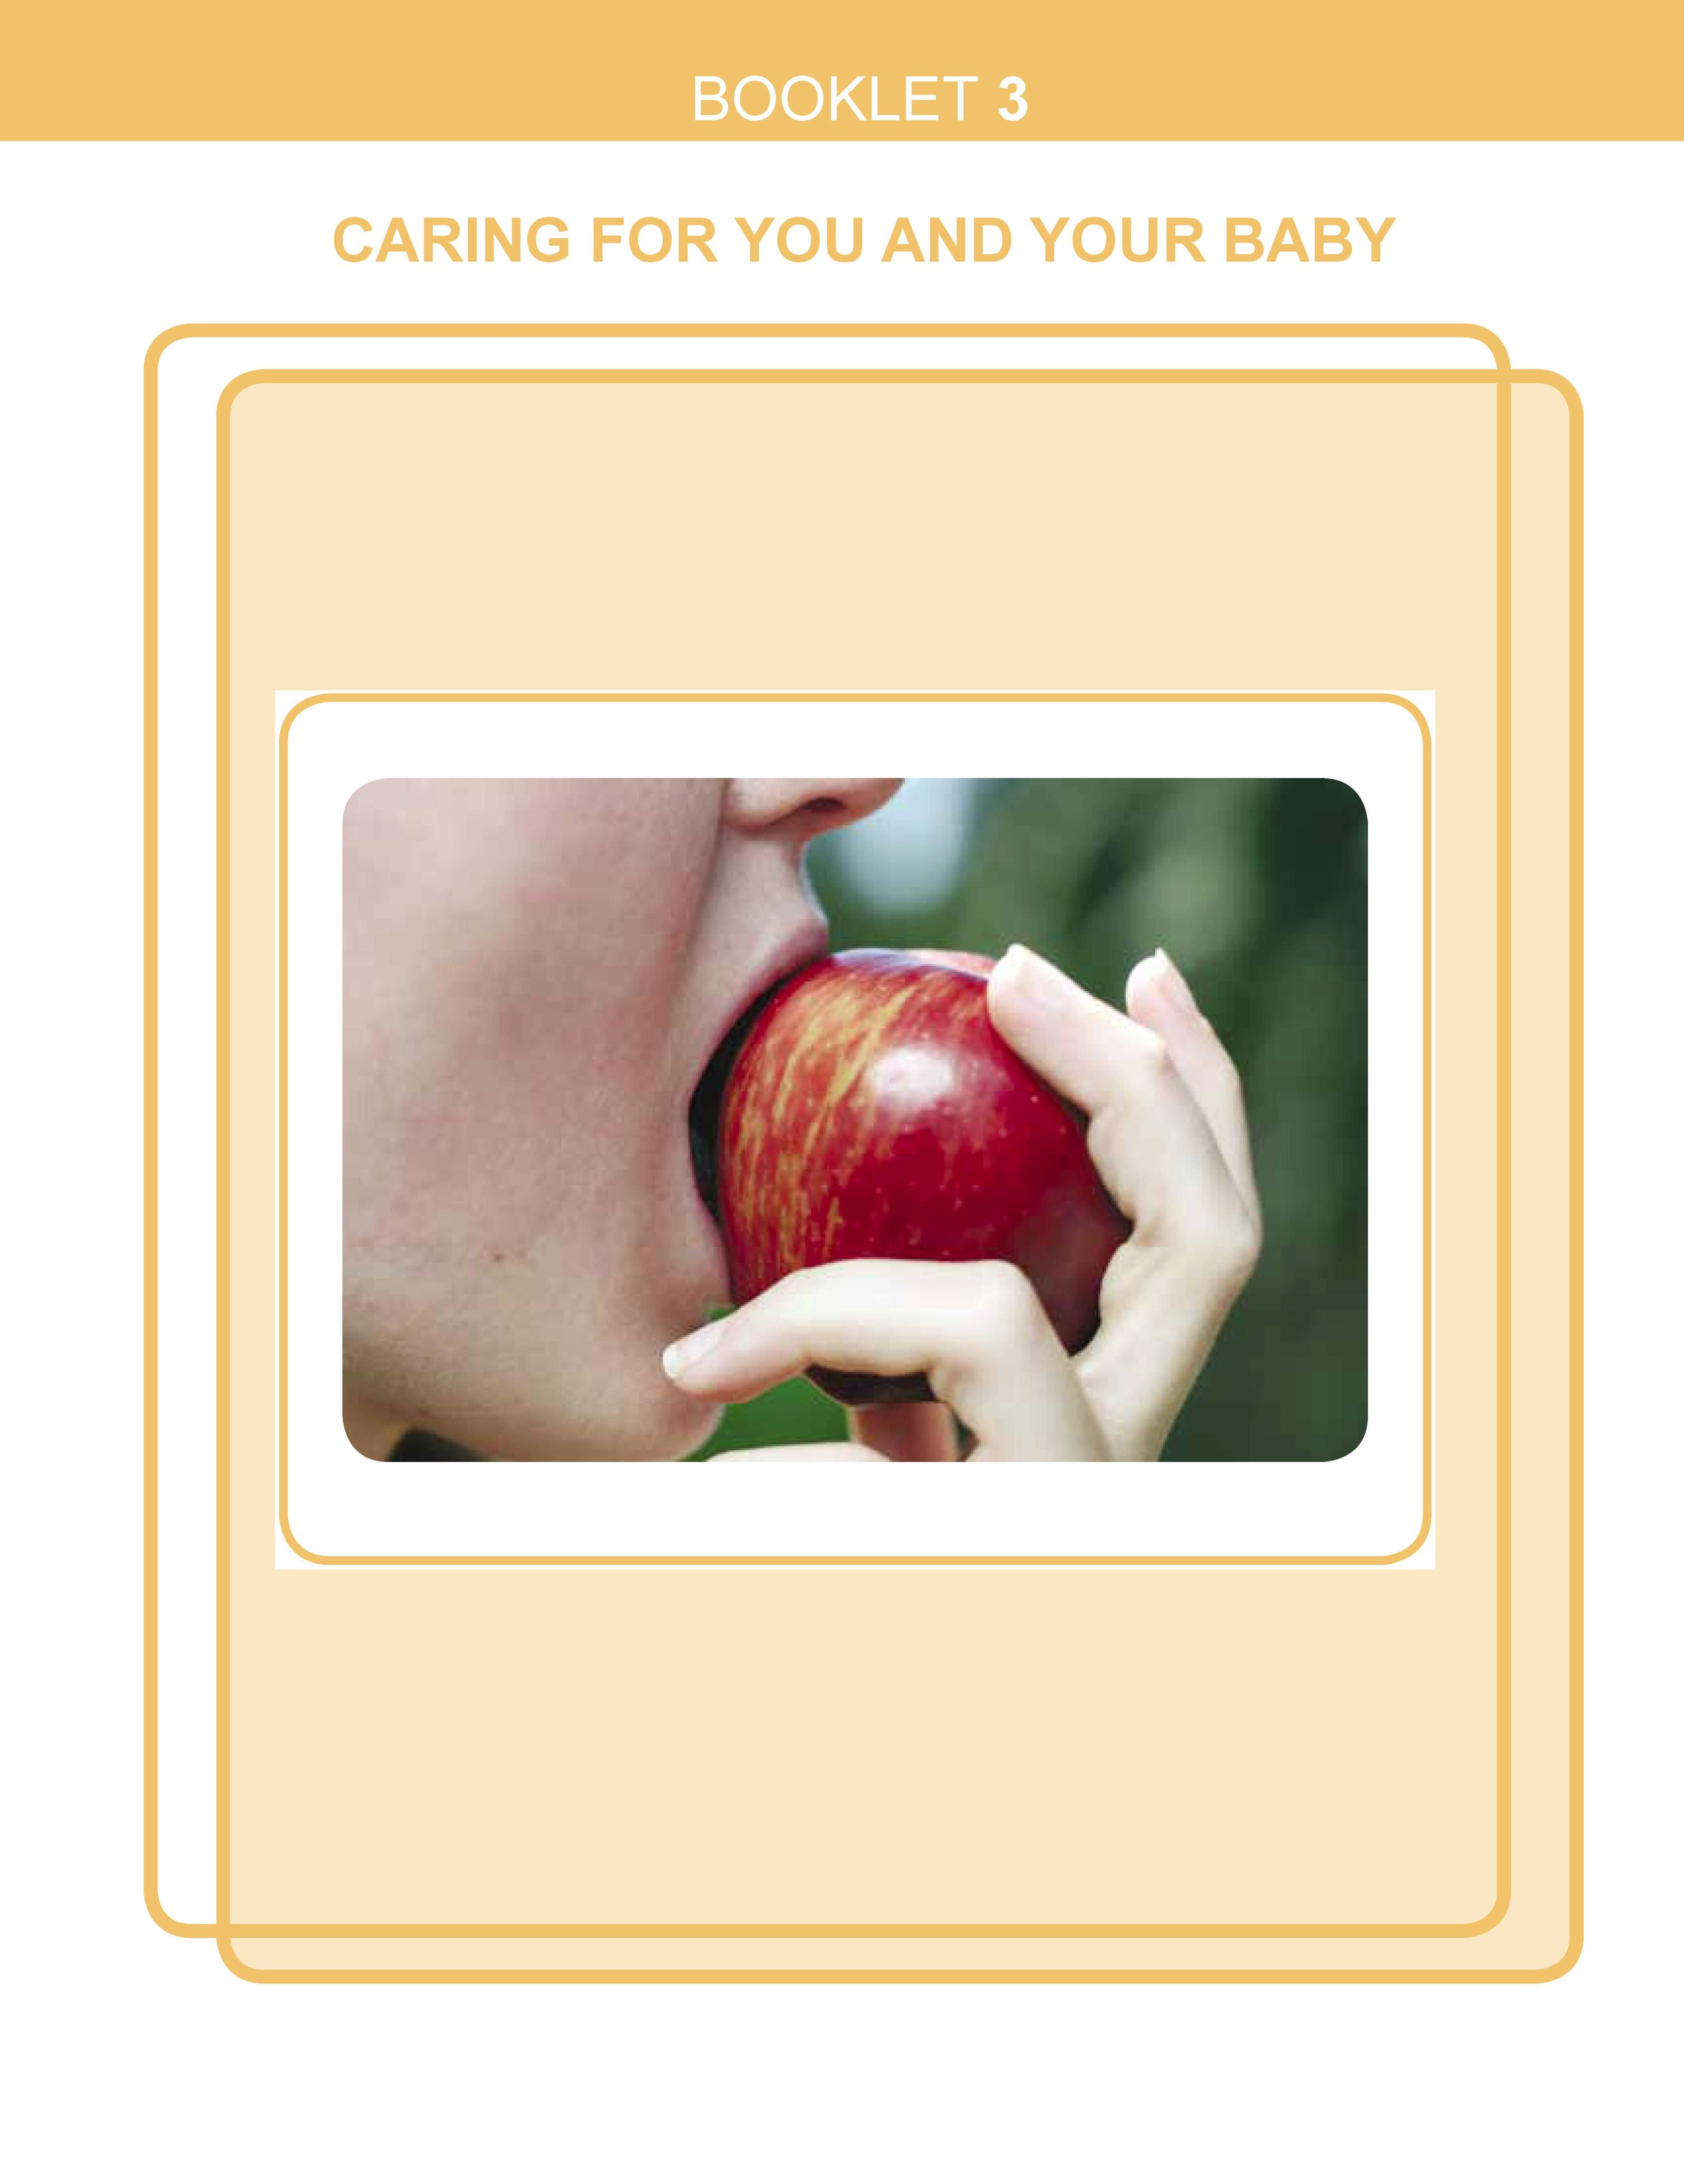 There are many things you can do for yourself and your baby. You can read more about  caring for you and your baby  in Booklet 3.